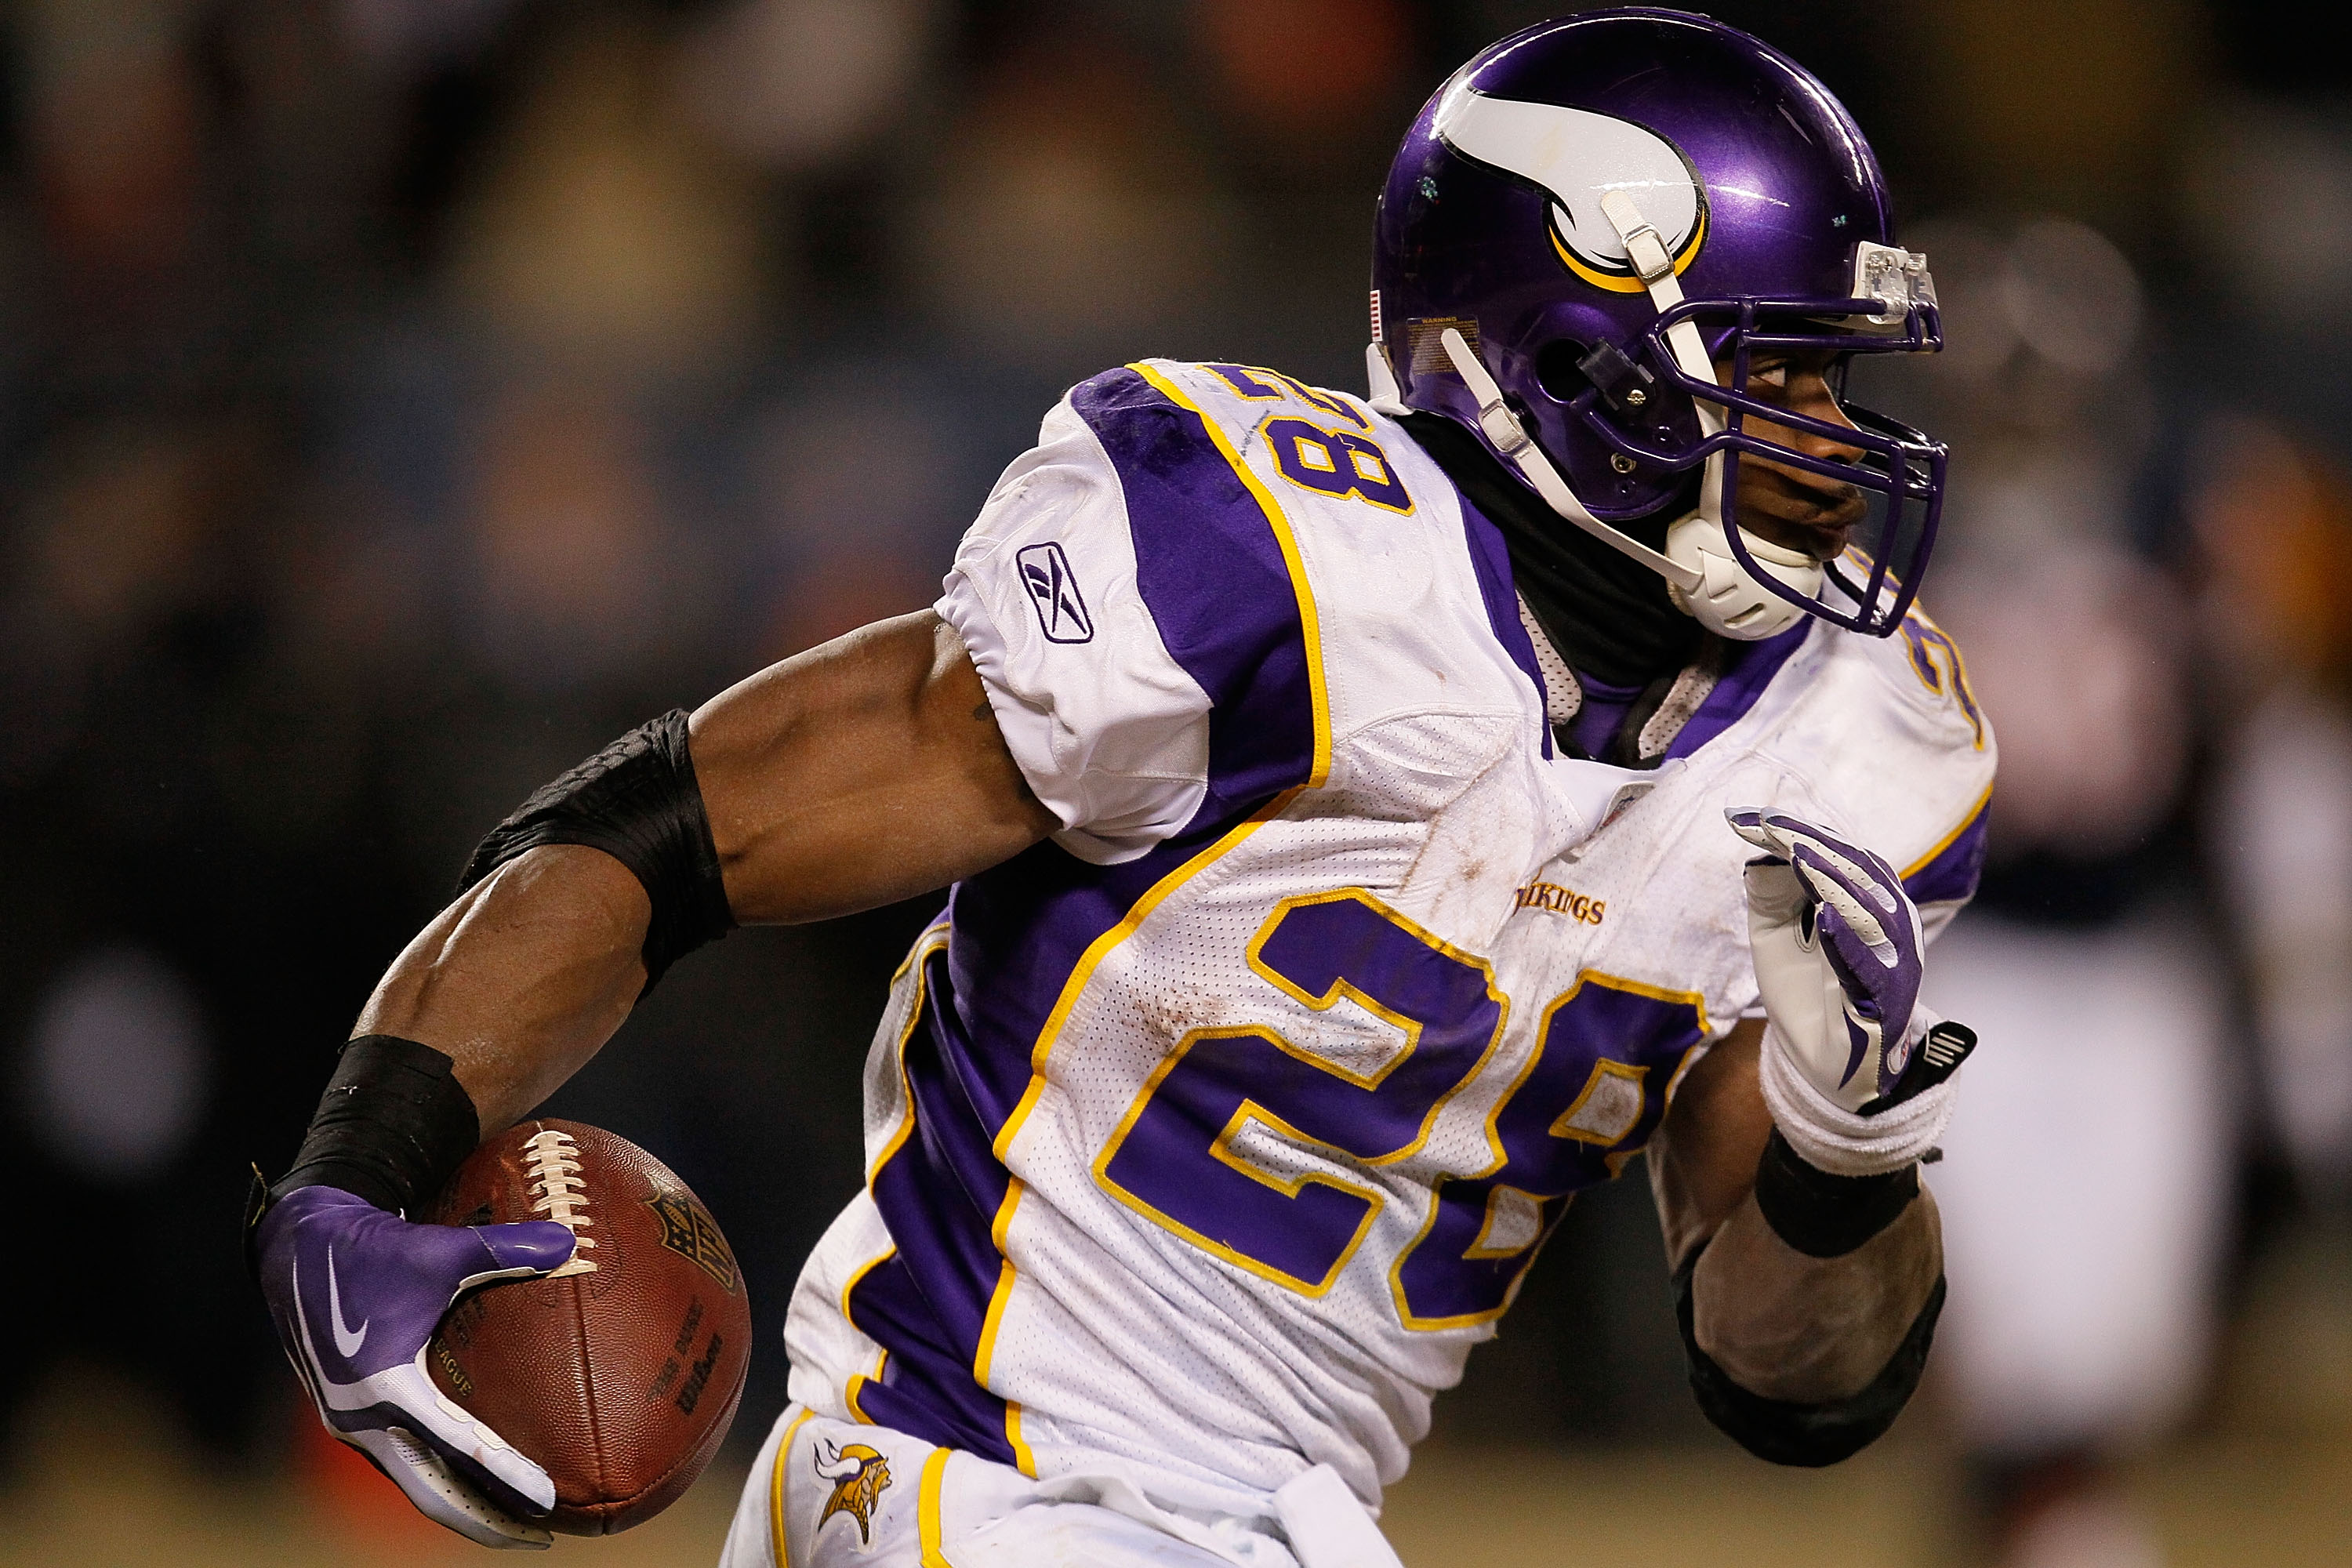 CHICAGO - DECEMBER 28: Adrian Peterson #28 of the Minnesota Vikings runs against the Chicago Bears at Soldier Field on December 28, 2009 in Chicago, Illinois. The Bears defeated the Vikings 36-30 in overtime.  (Photo by Jonathan Daniel/Getty Images)